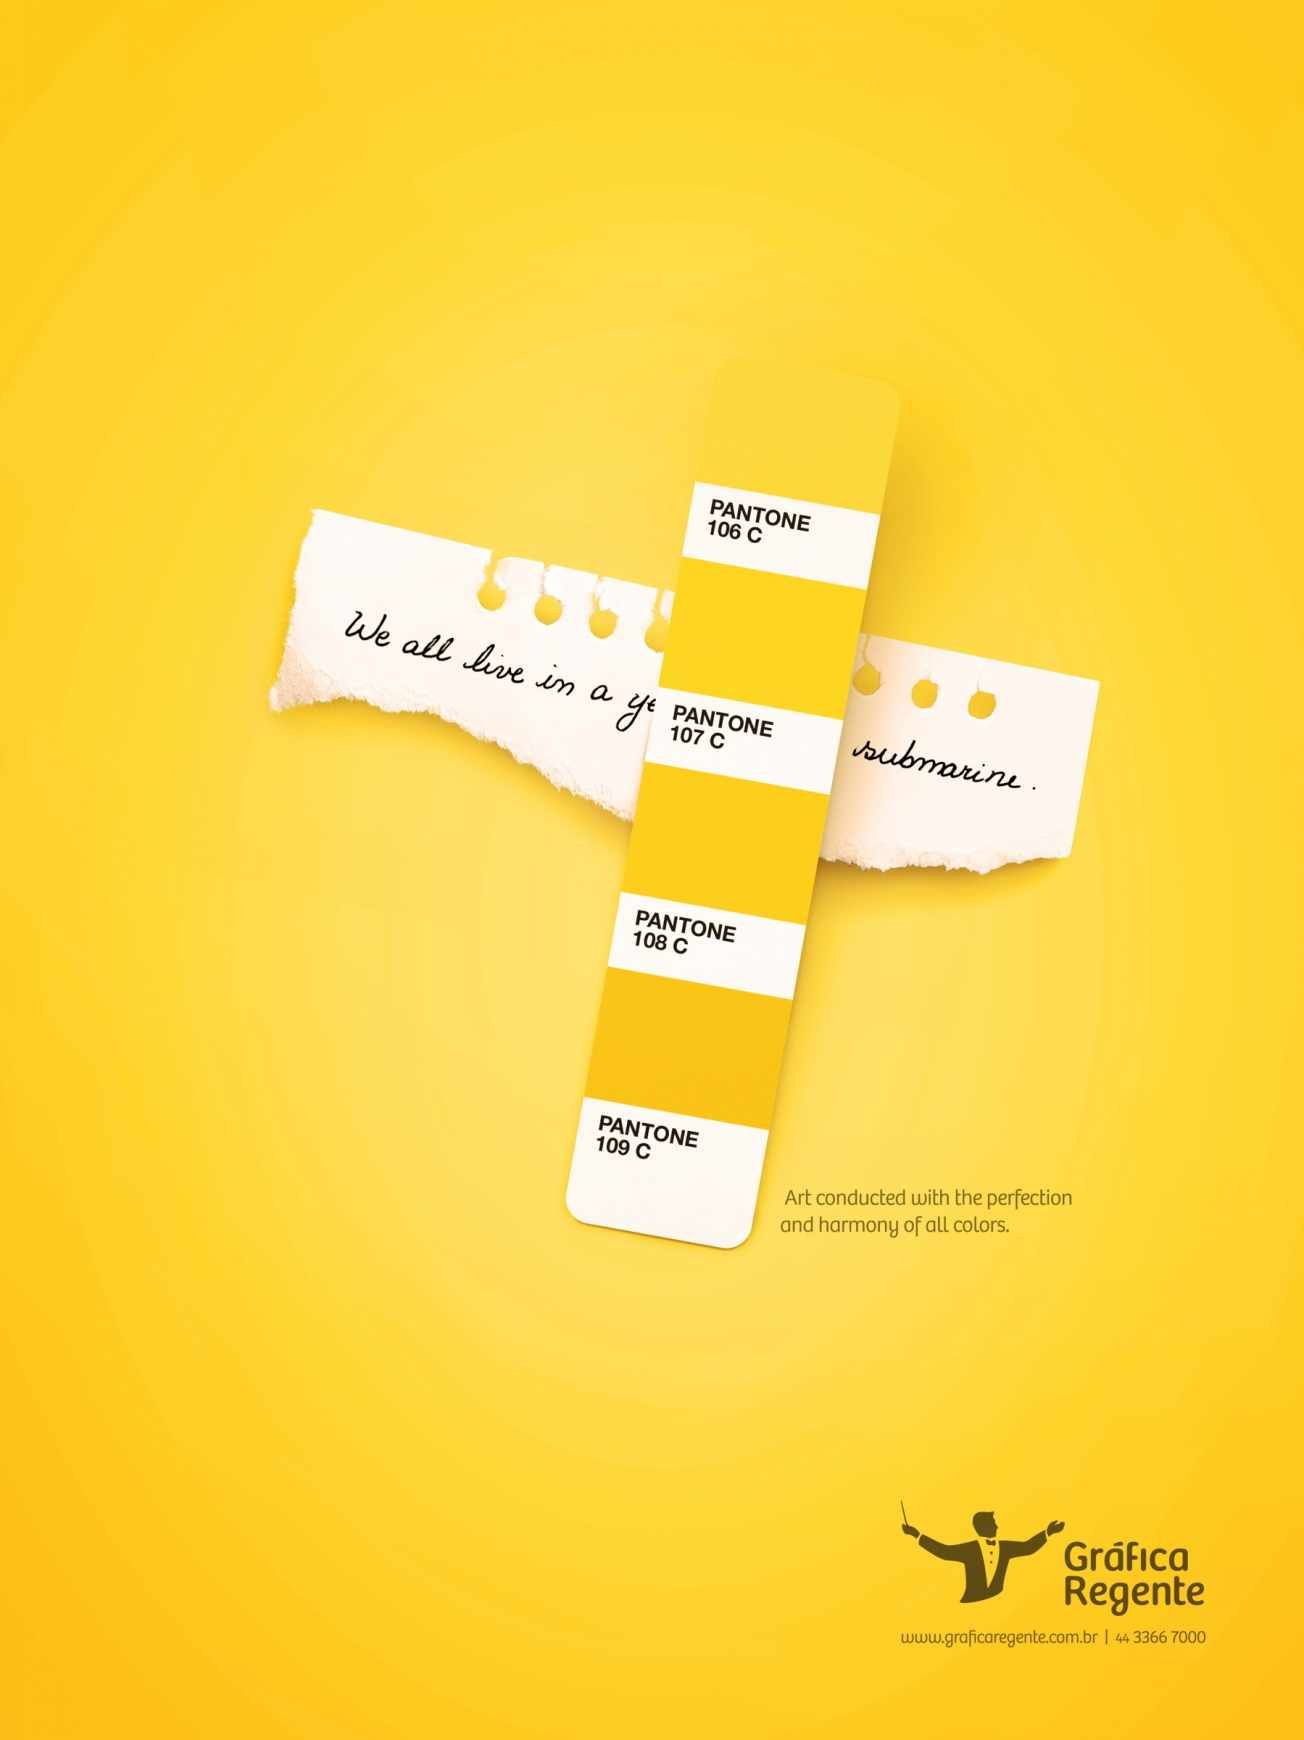 Print Advertisment Created By Jump Brazil For Grafica Regente Within The Category Professional Services